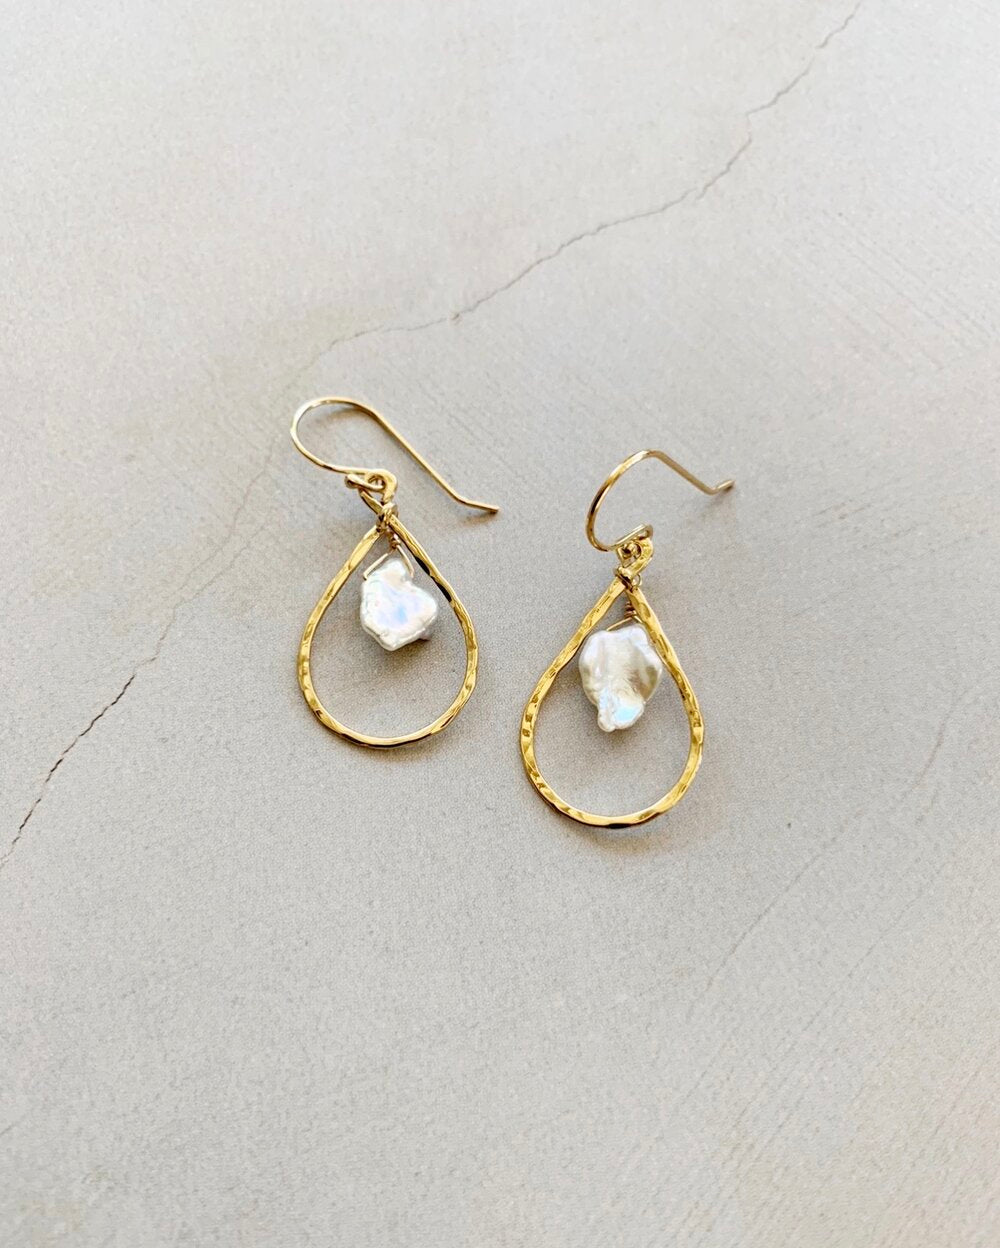 Jennifer II Pearl Petite Teardrop earrings